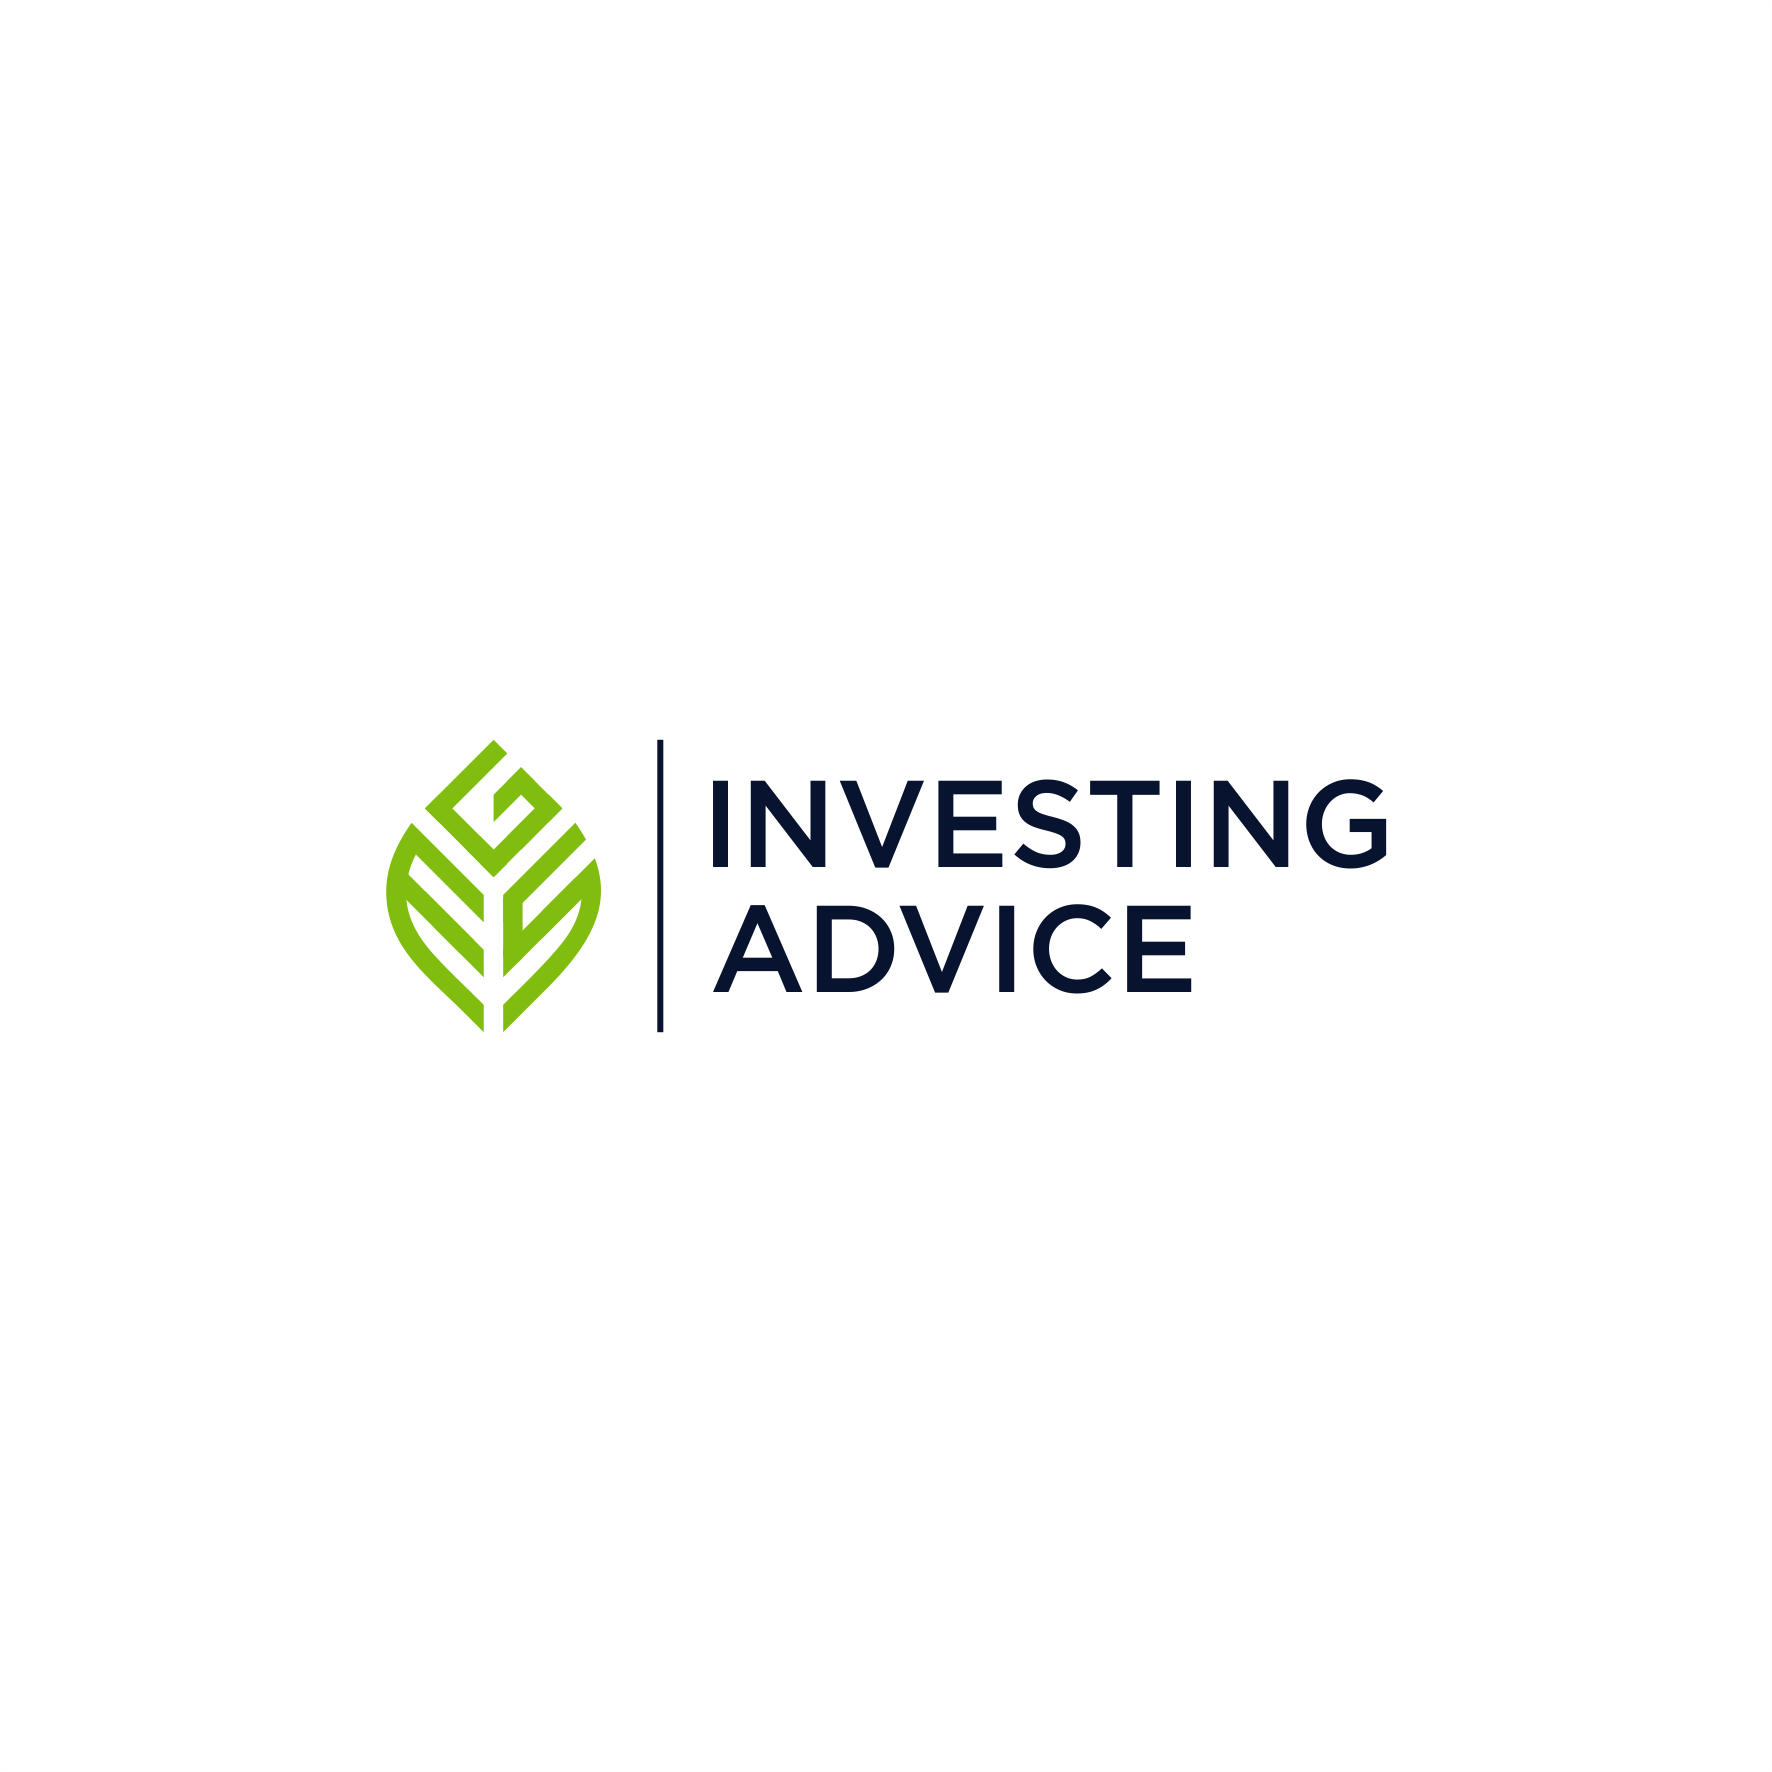 Professional Logo appealing to investors interested in a sustainable future.